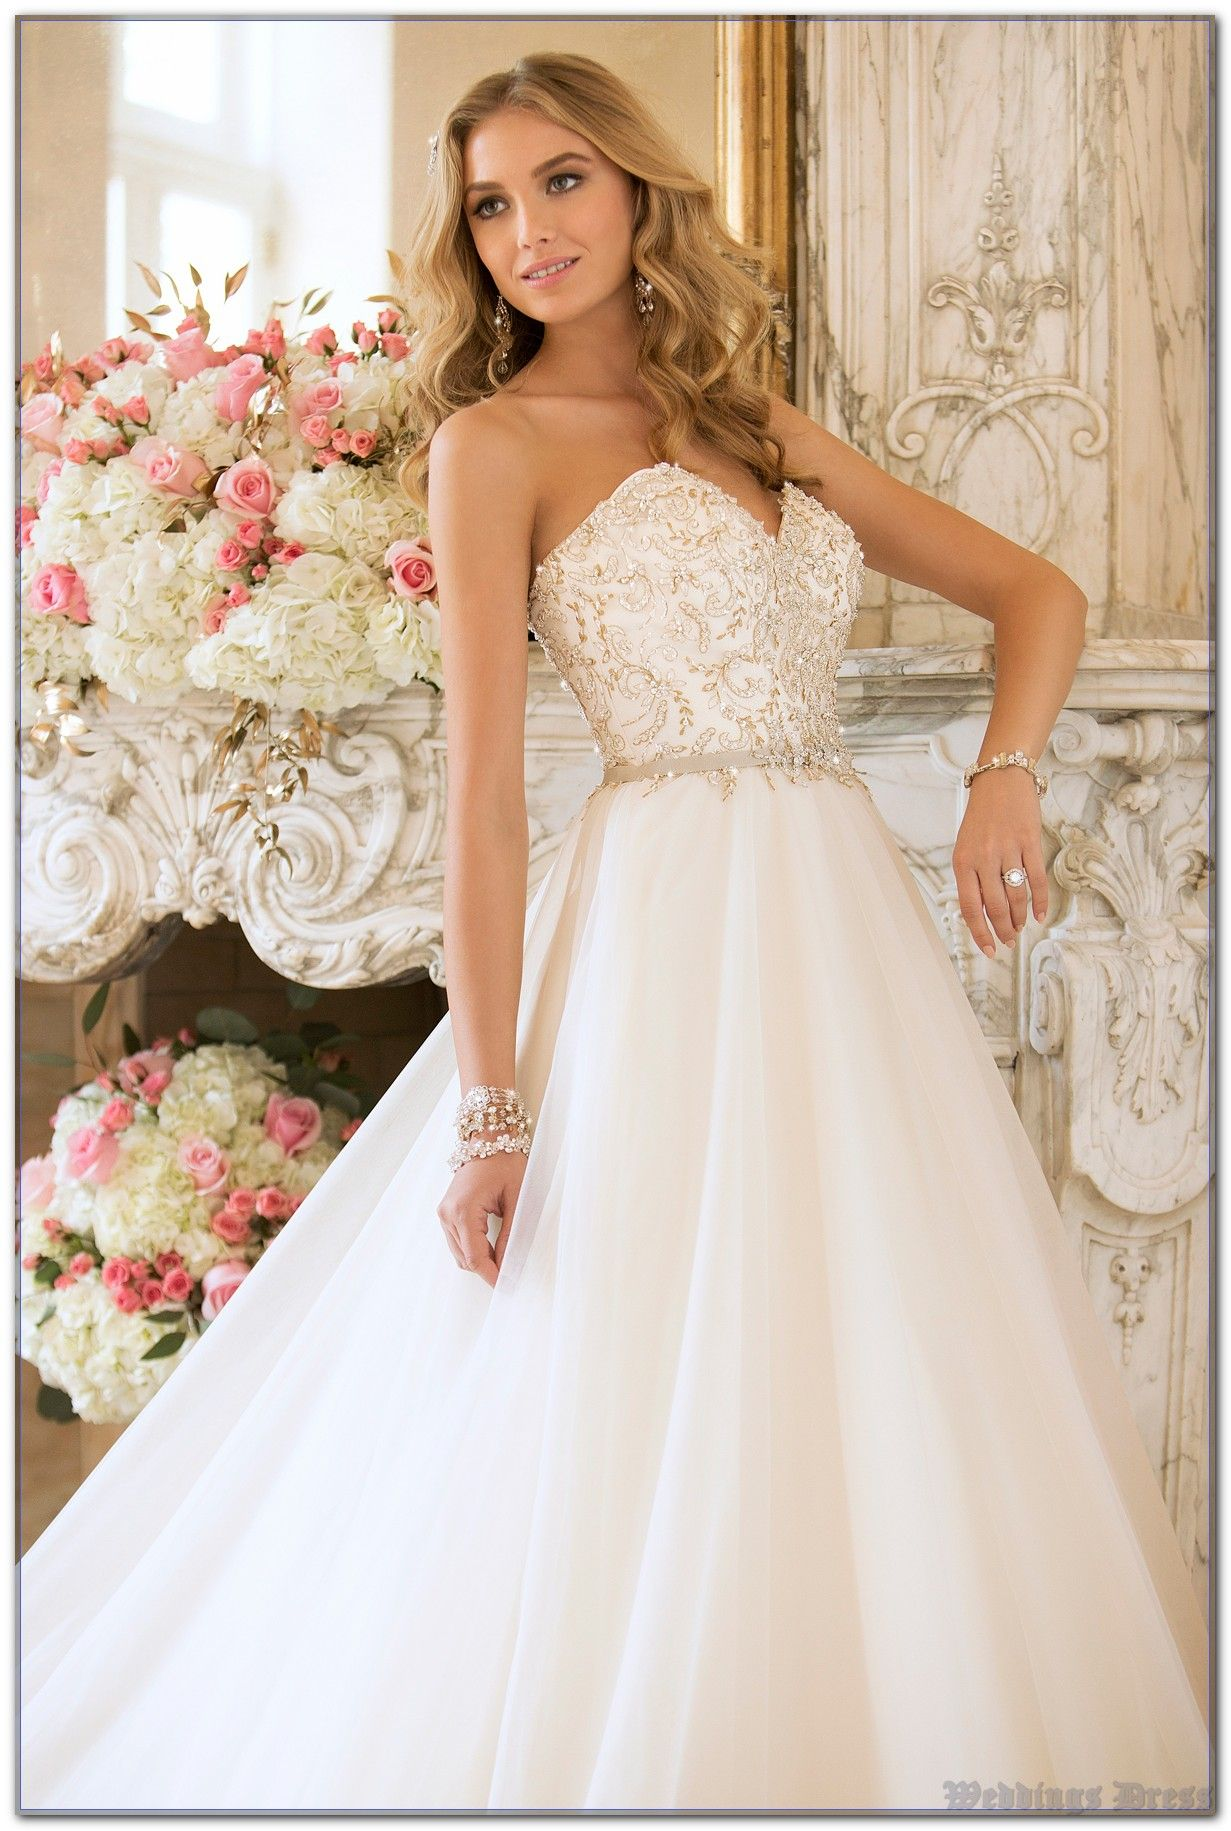 Find Out Now, What Should You Do For Fast Weddings Dress?